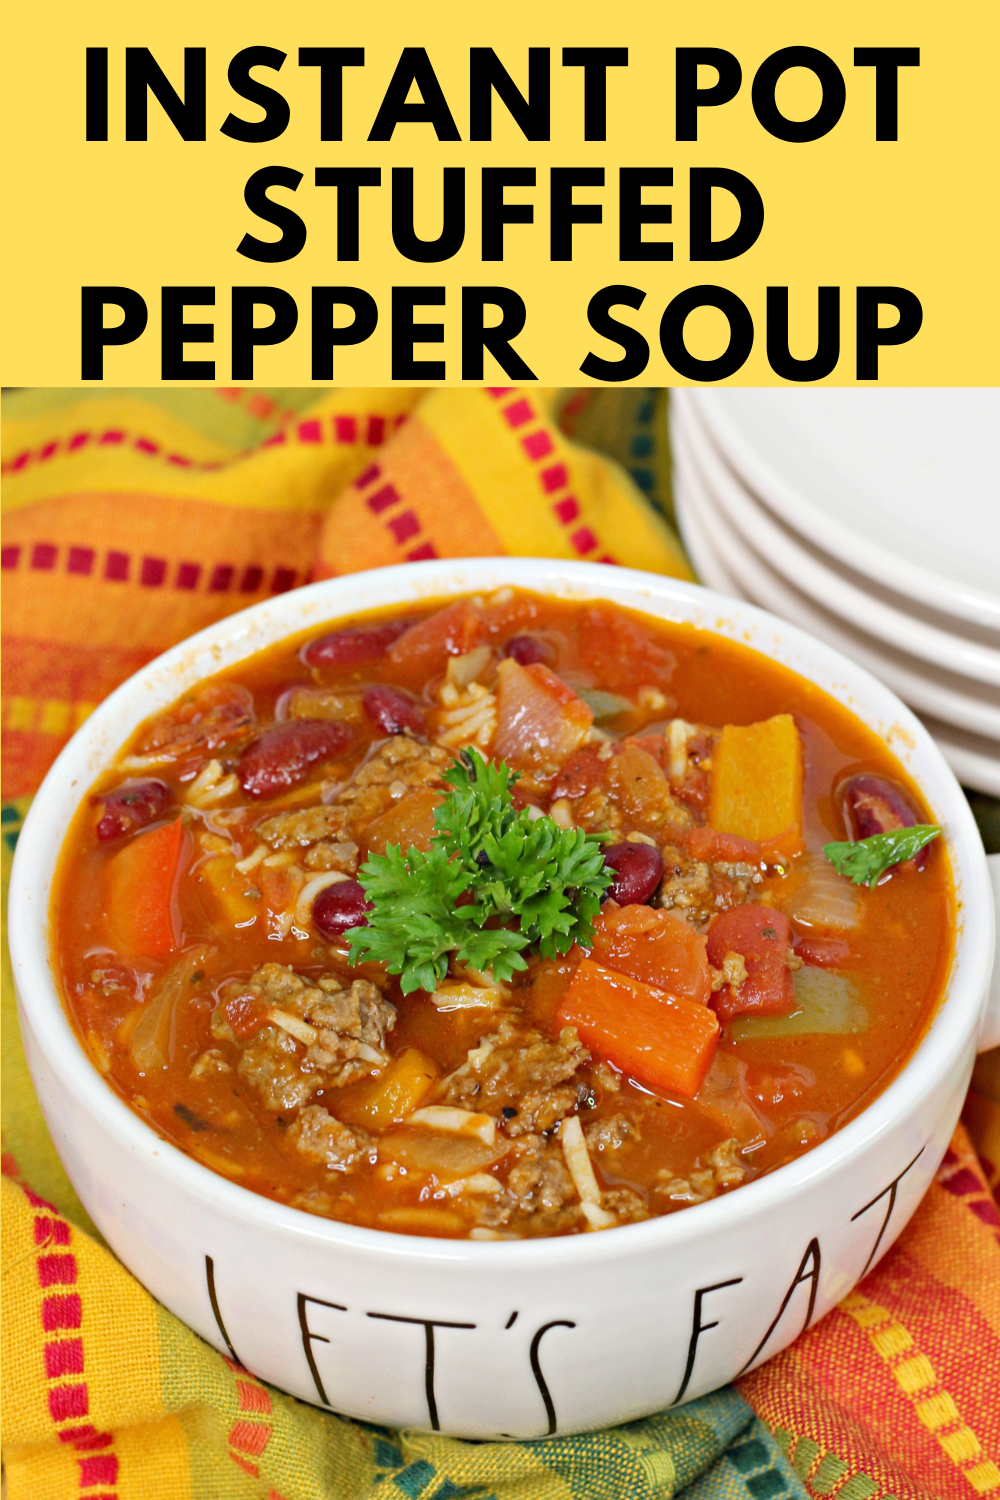 Instant Pot Stuffed Pepper Soup Mama S On A Budget Recipe In 2020 Stuffed Pepper Soup Stuffed Peppers Easy Soup Recipes